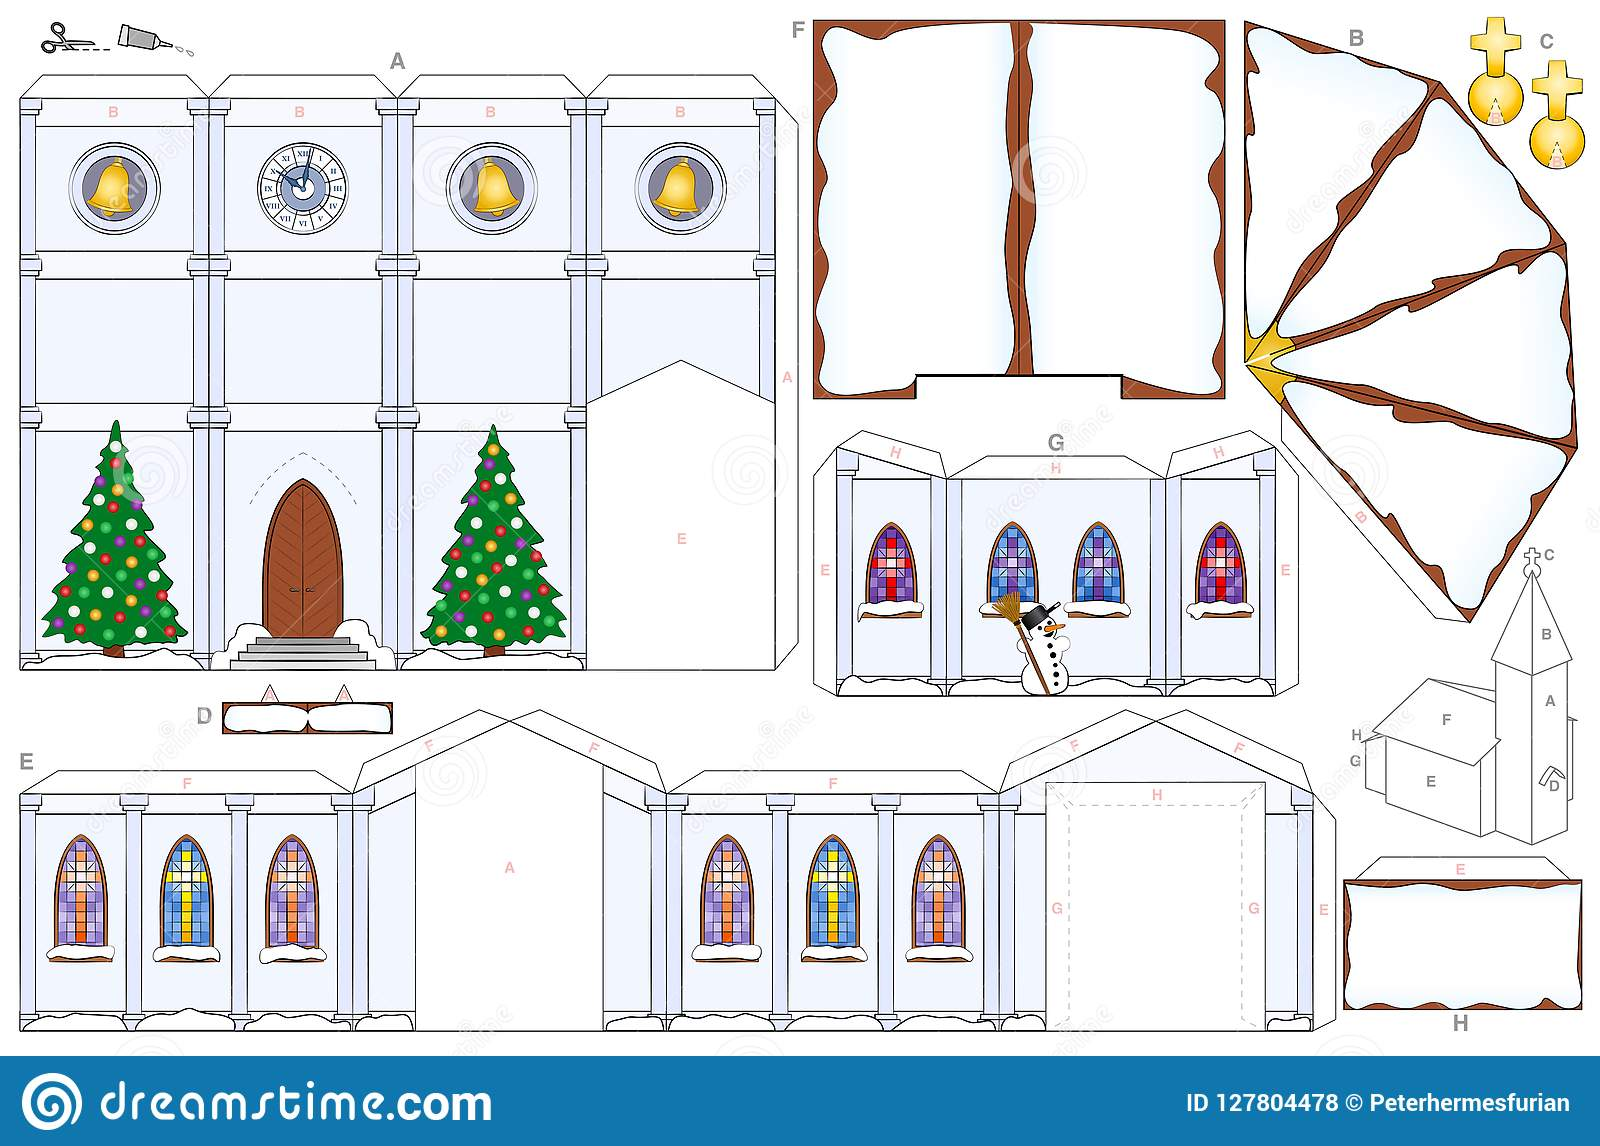 Church christmas winter snow paper craft template stock vector church christmas winter snow paper craft template maxwellsz